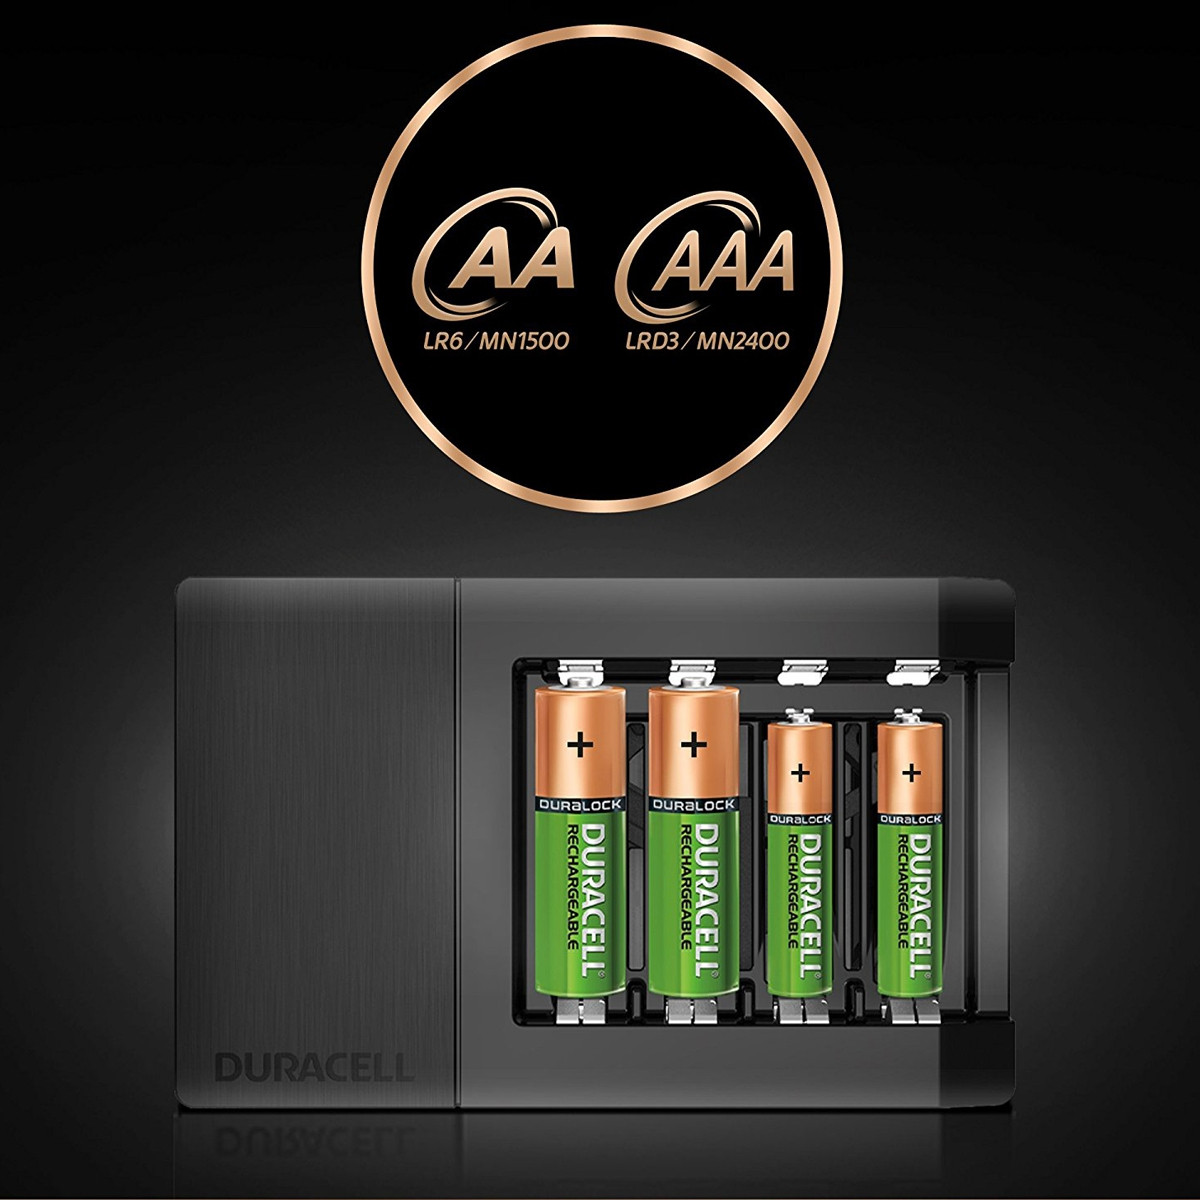 Duracell Battery Charger with 4pcs 1300mAh Batteries (6